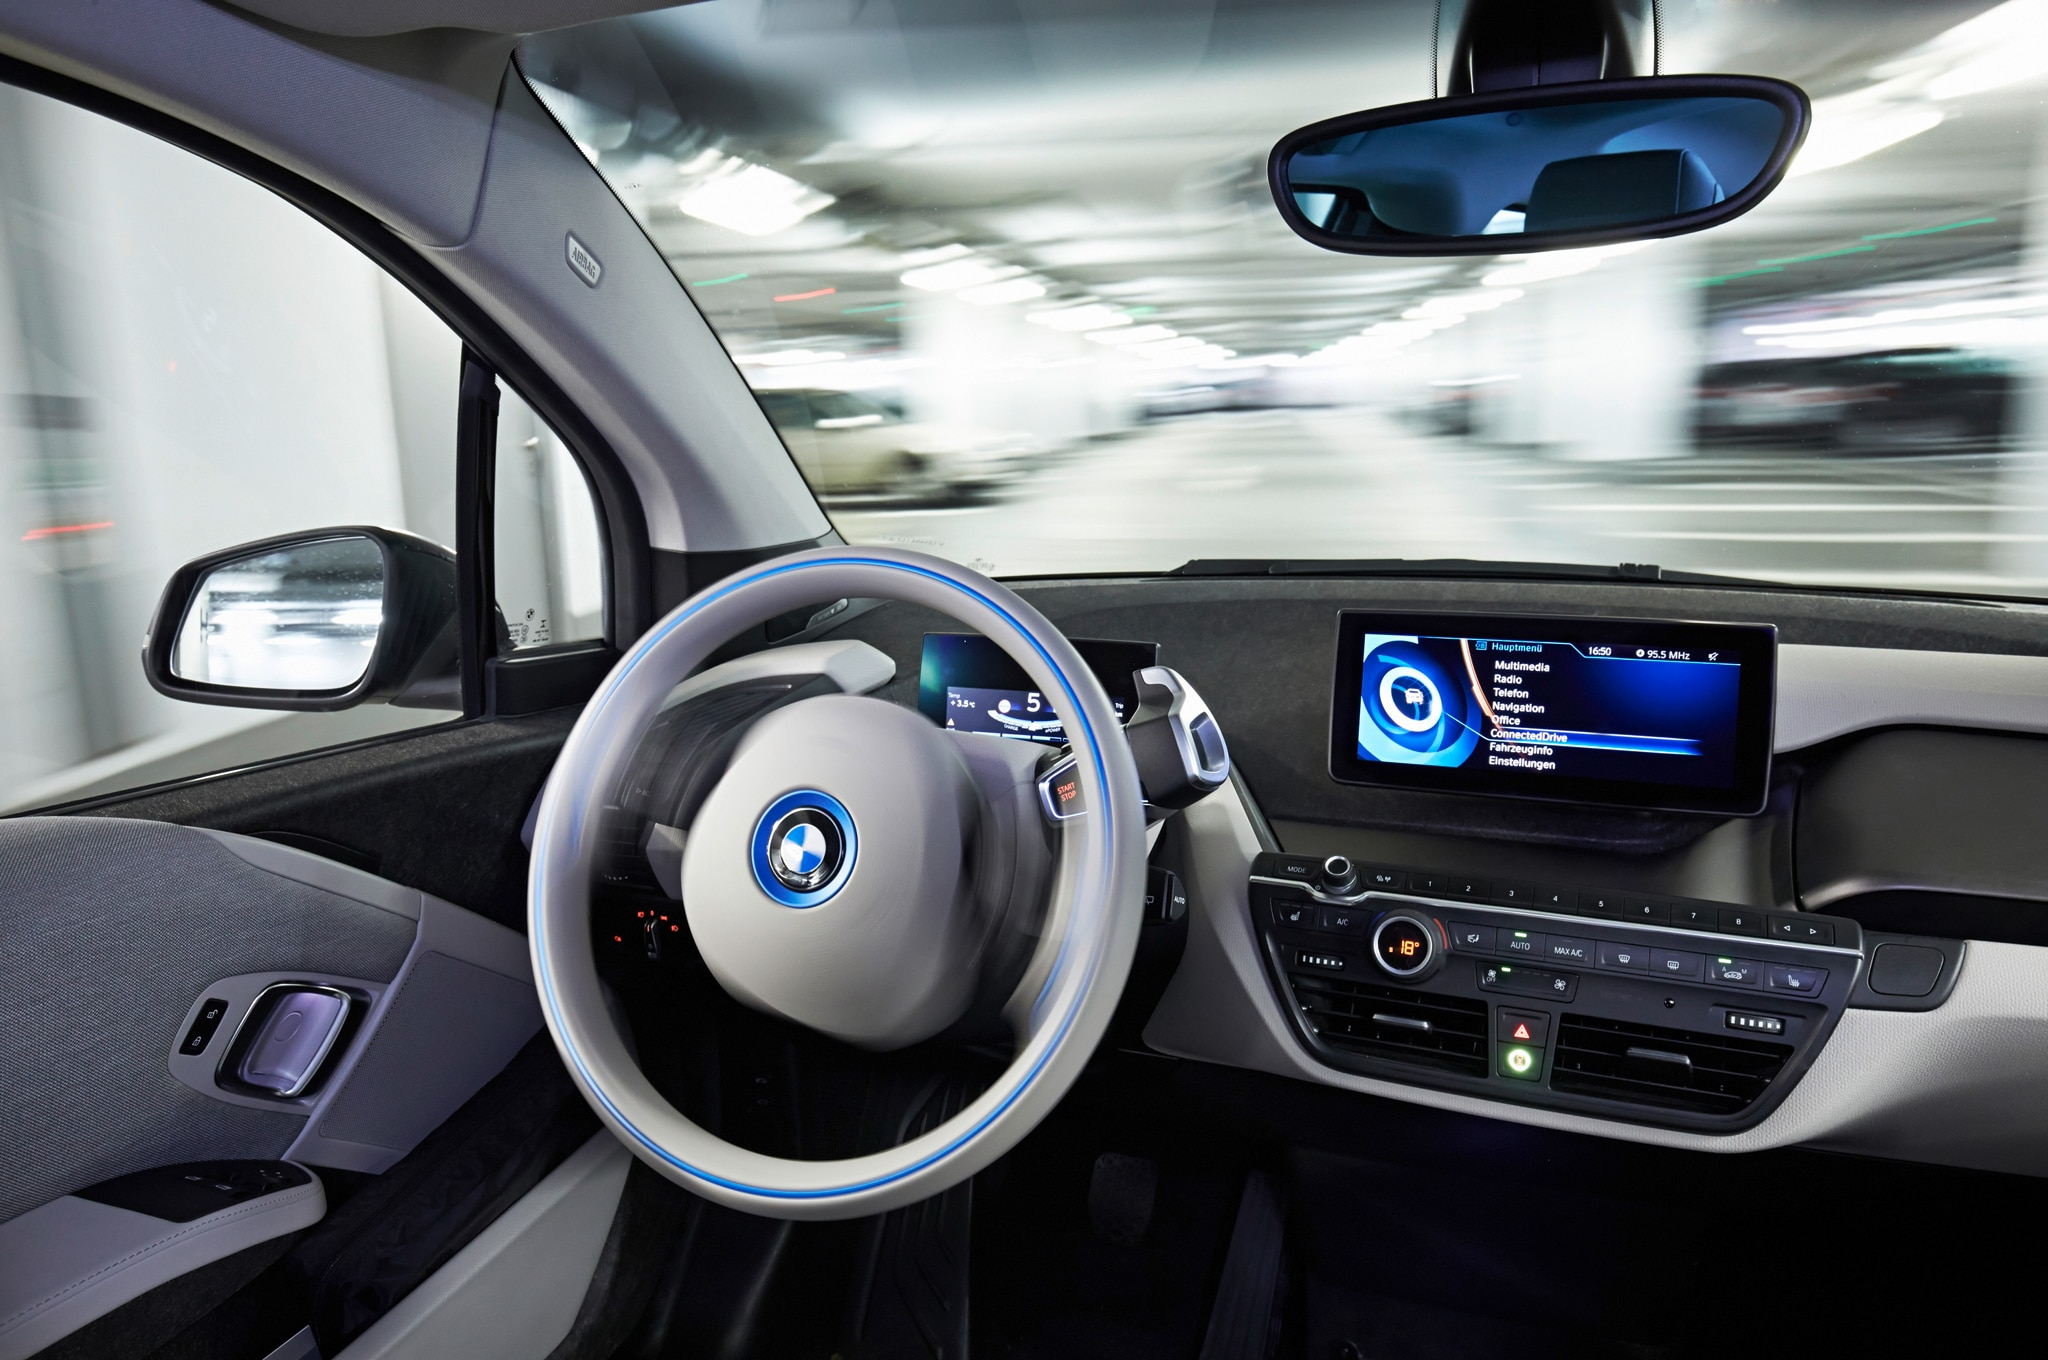 bmw to demonstrate active assist remote valet parking at ces  2014 bmw i3 edrive remote valet parking interior 02